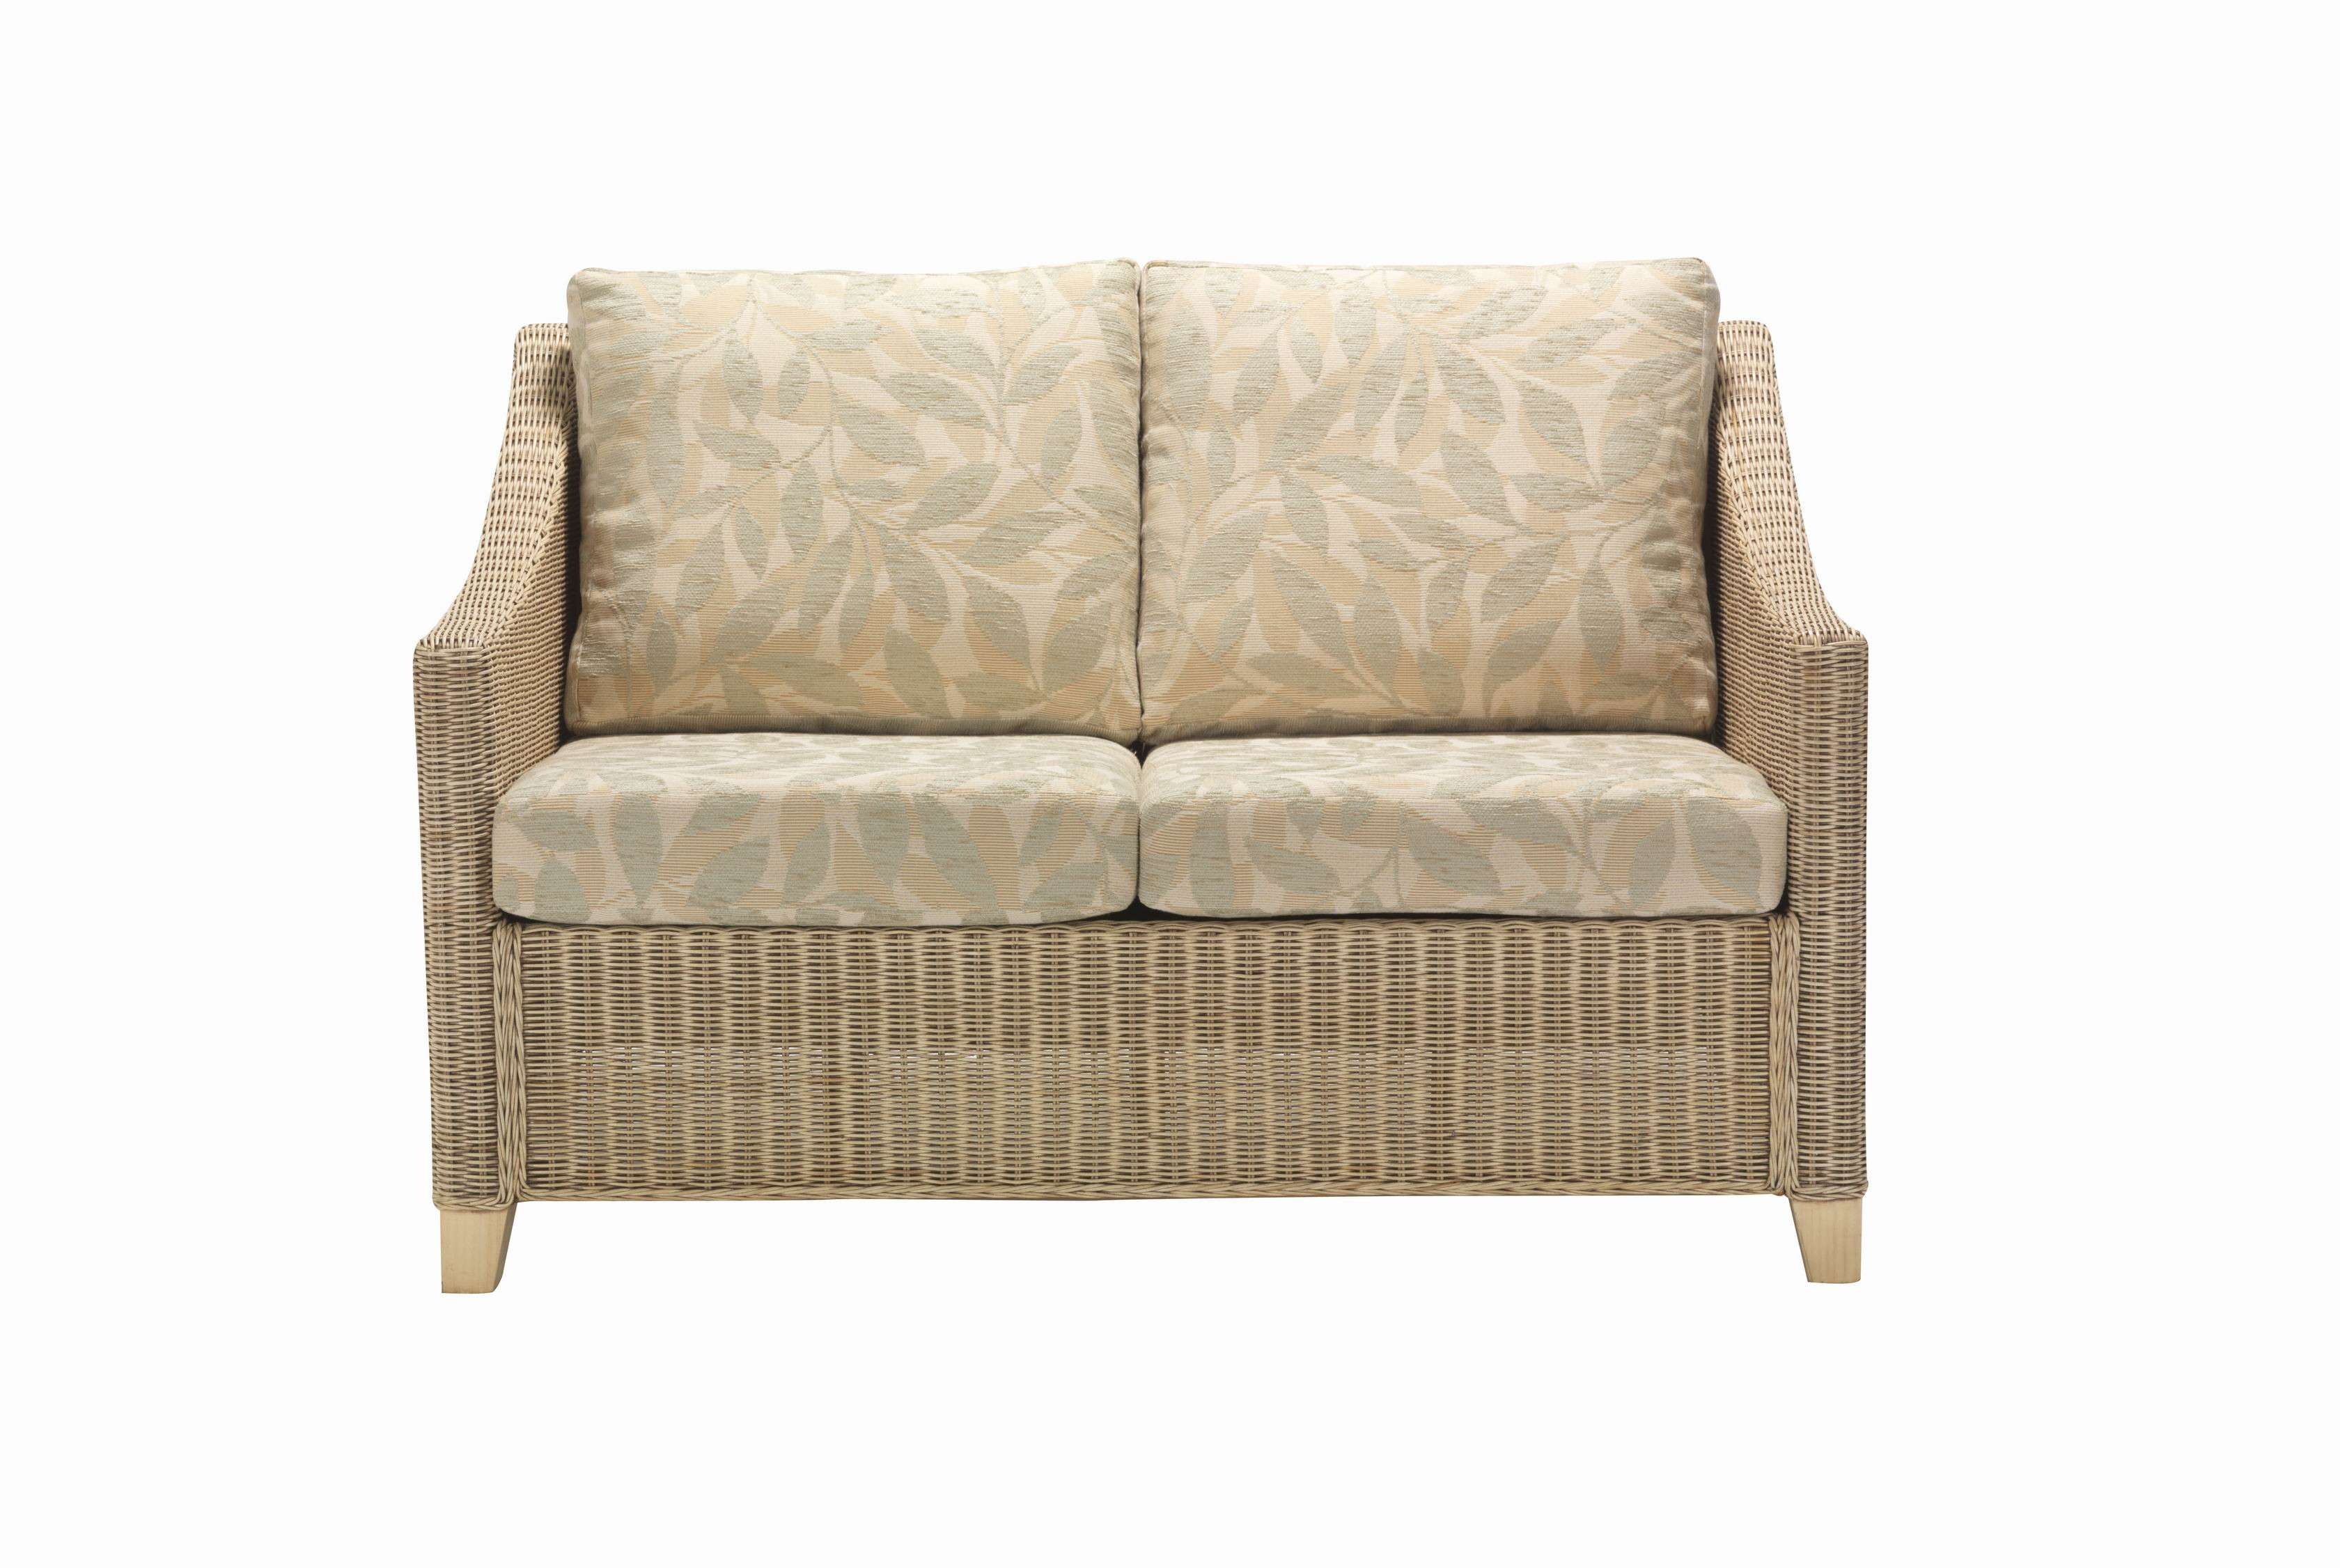 Desser Dijon Sofa and Cushion